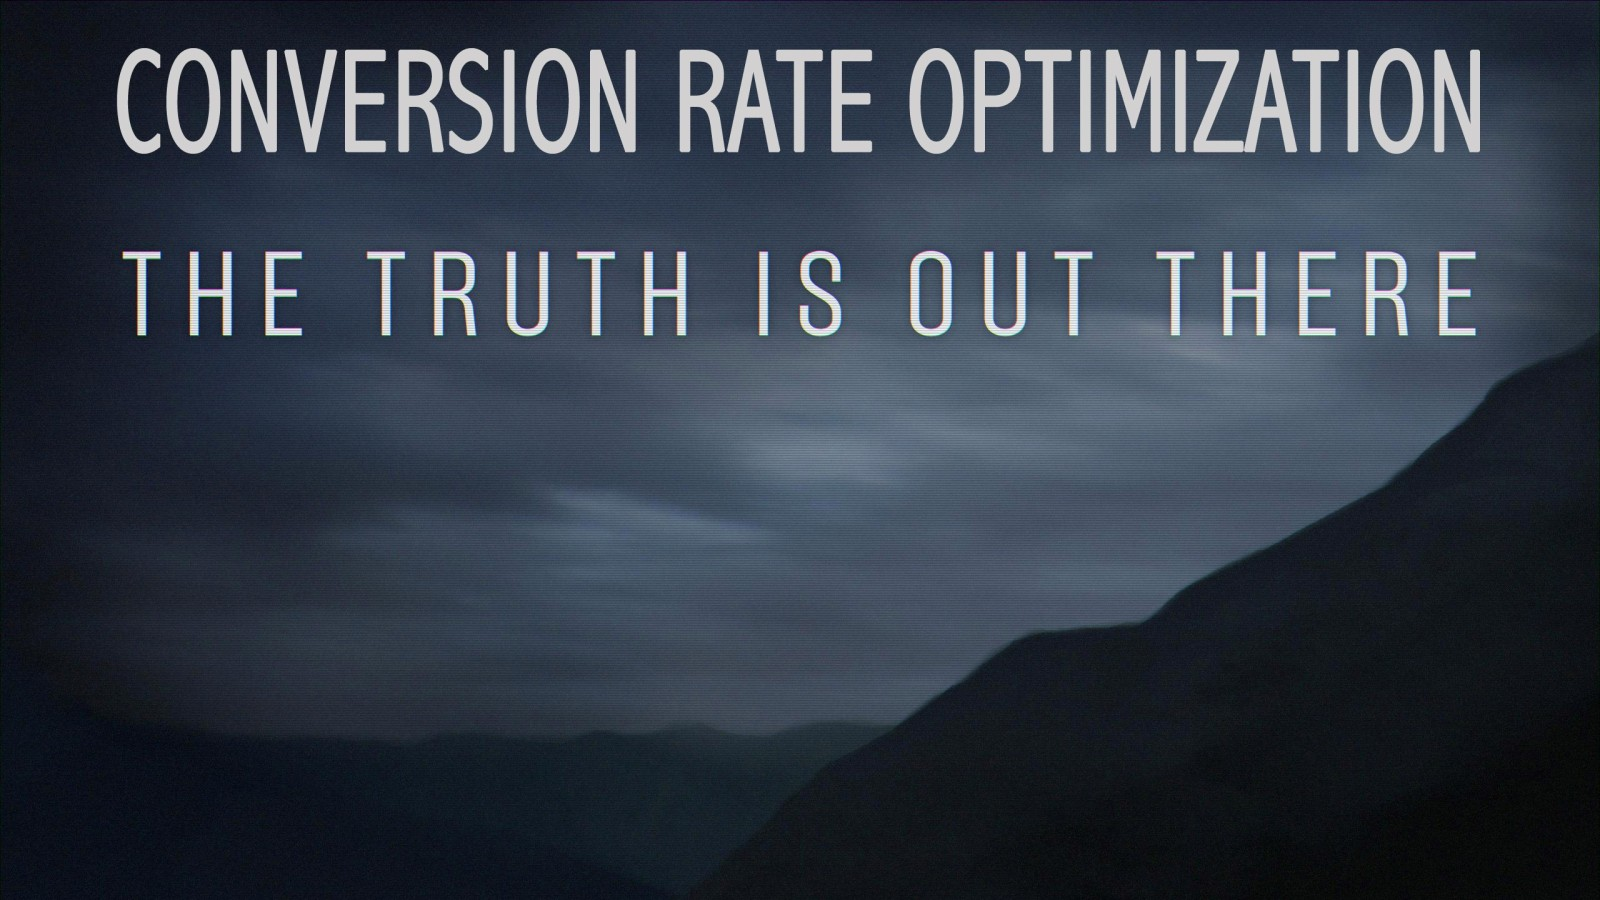 10 Cro Truth Bombs That Will Change The Way You Think Moz Measurement Of Electrical Quantities With A 1 Classic B Test Is Fairy Tale